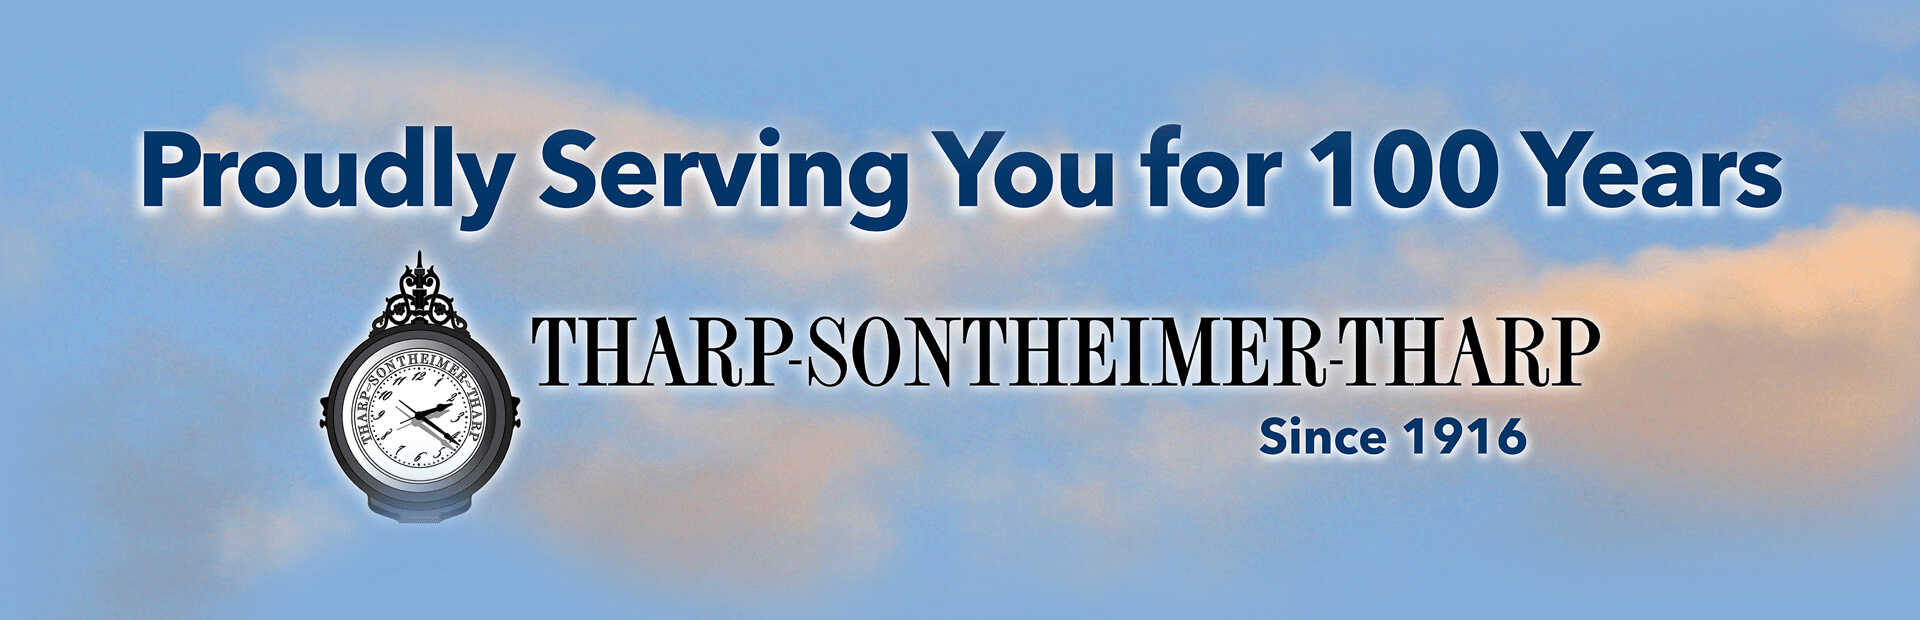 Tharp-Sontheimer-Tharp Funeral Home in Metairie, LA